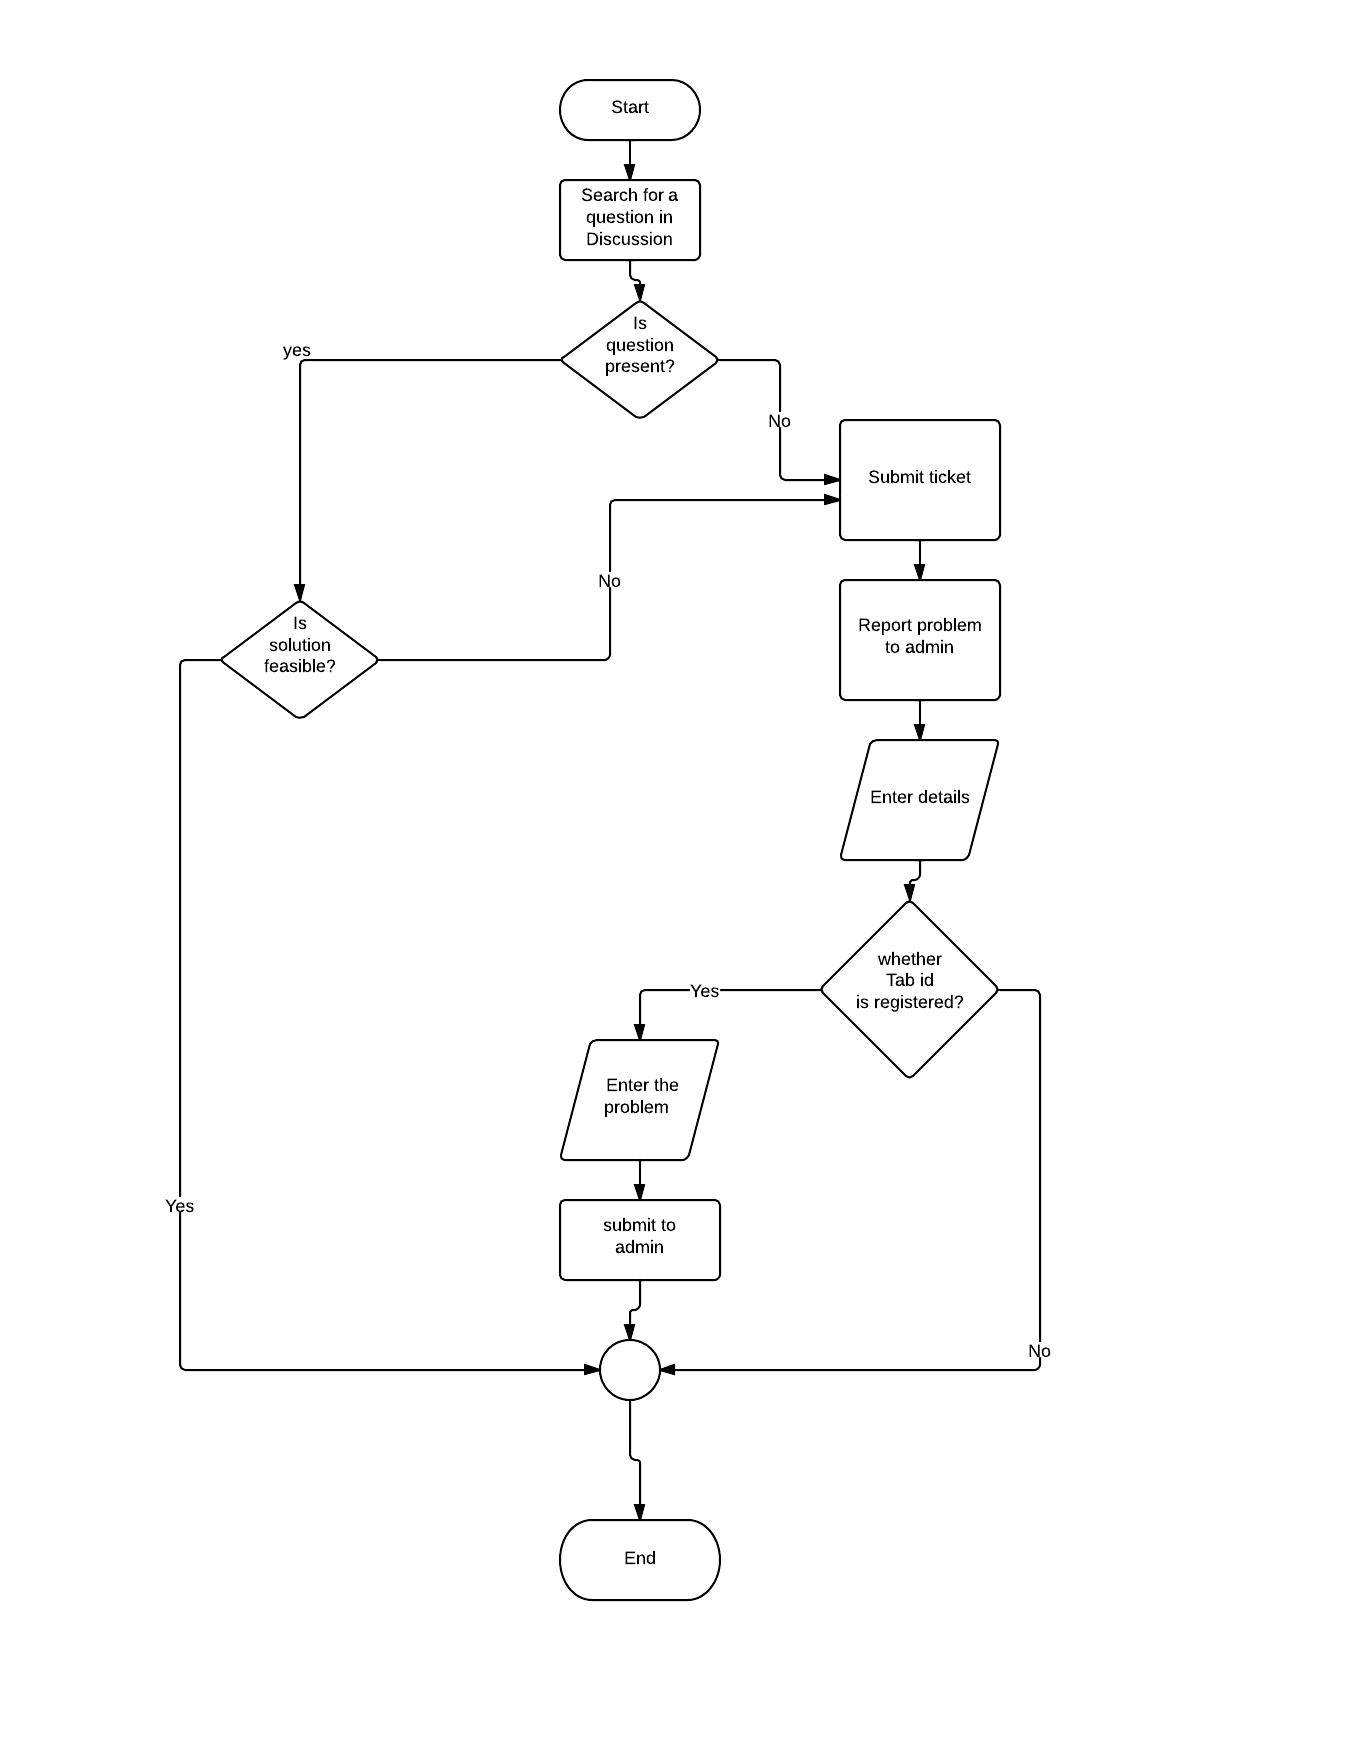 Acknowledgement srs for aakashtechsupport 101 documentation flow chart for reporting a problem nvjuhfo Image collections